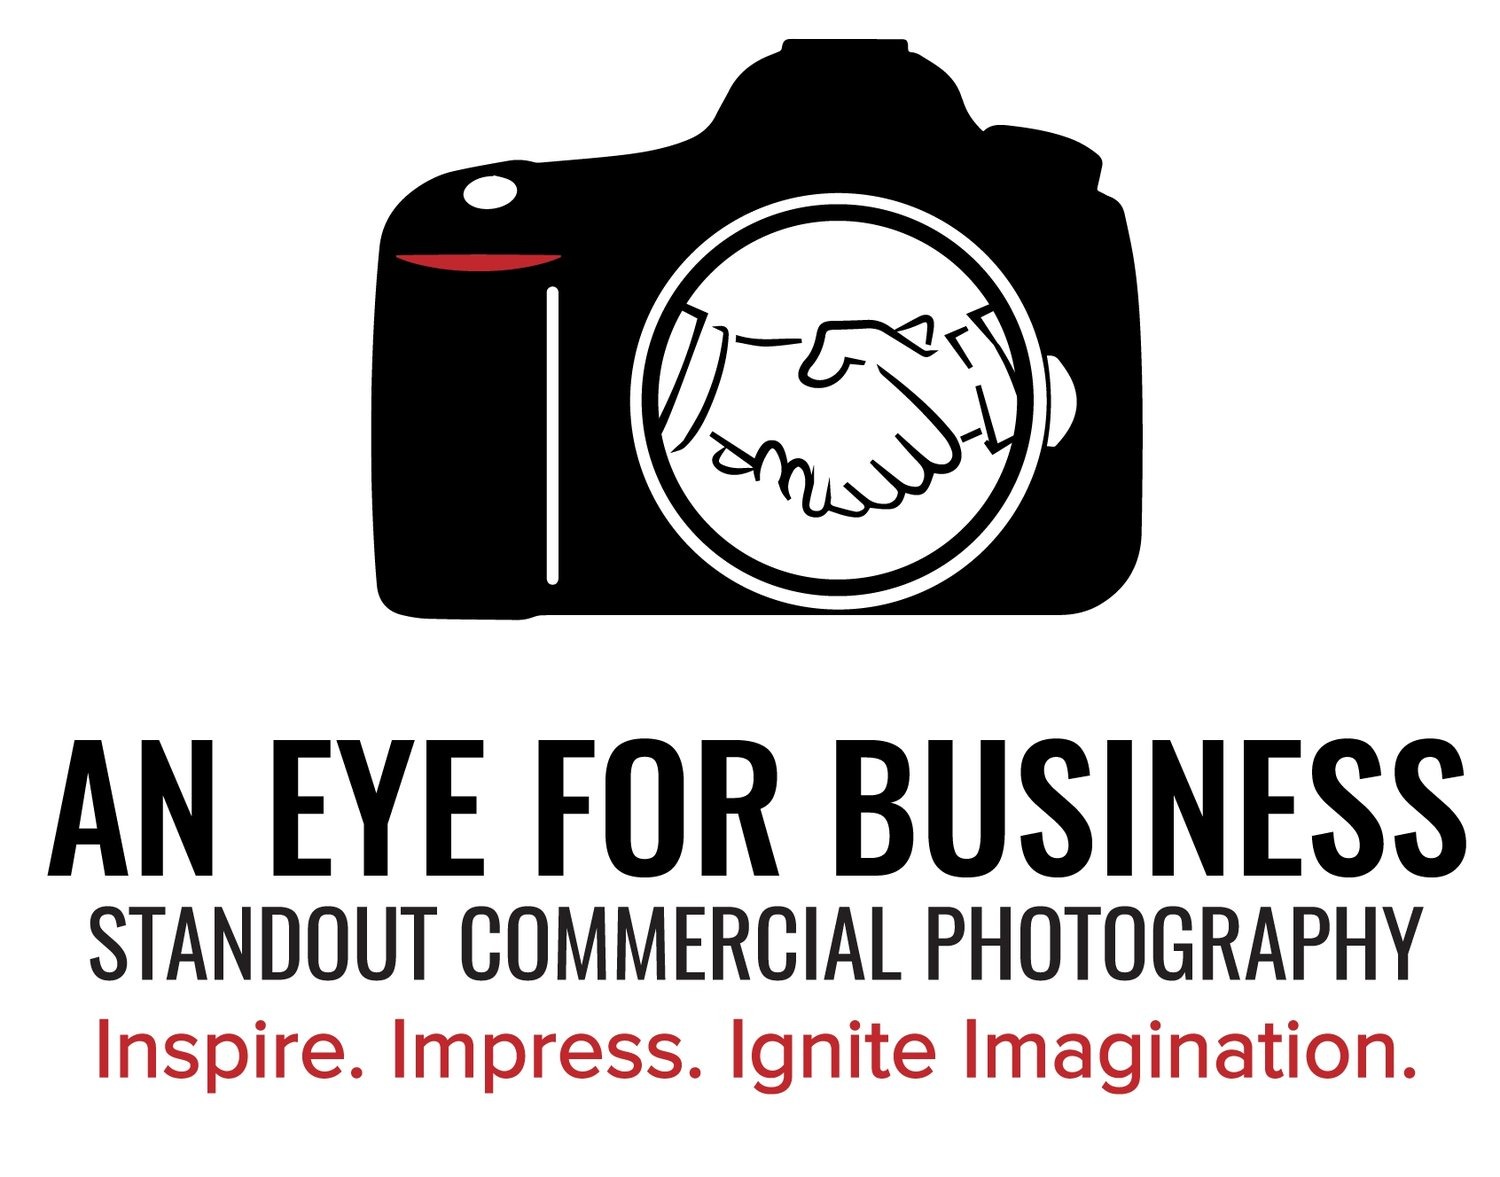 An Eye for Business